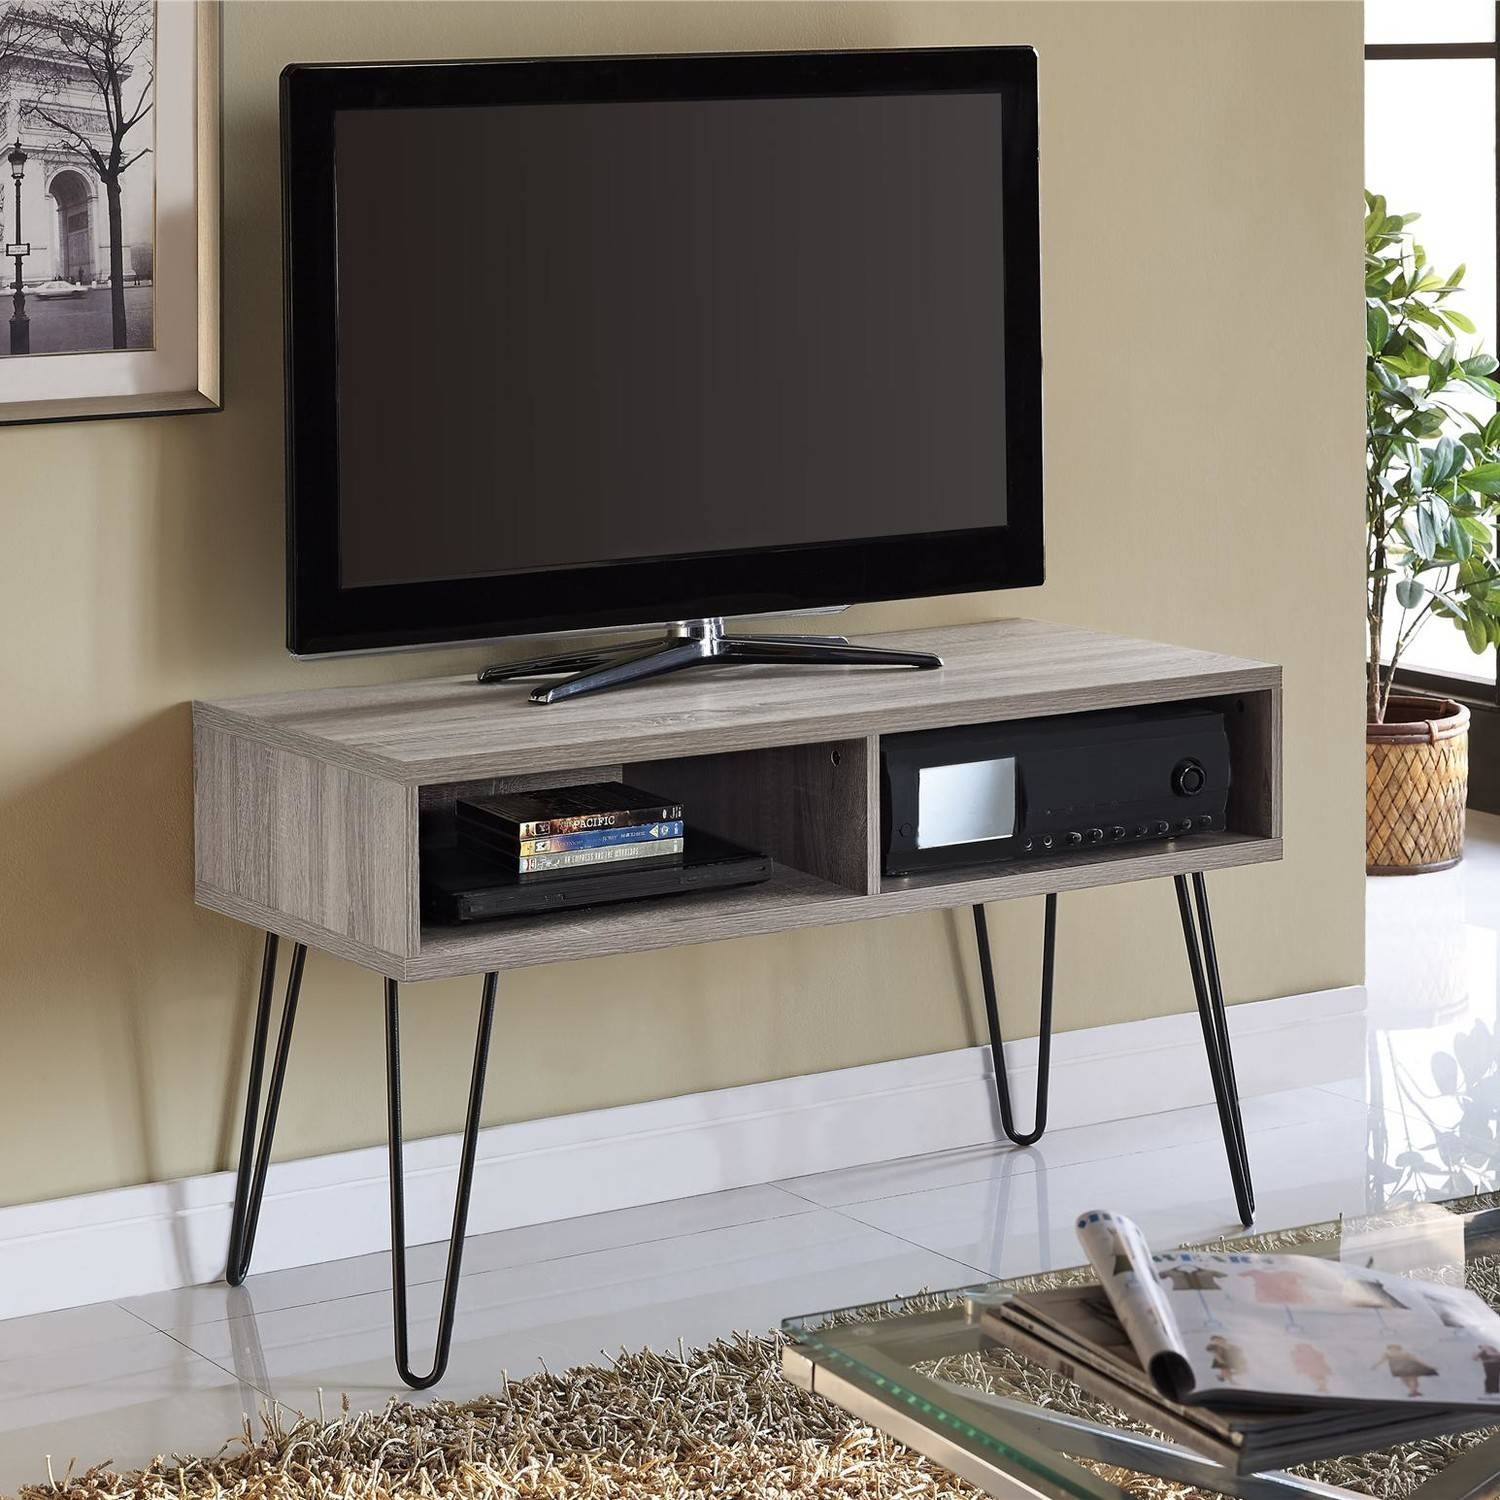 Tv Stand Small Space | Nana's Workshop with regard to Tv Stands For Small Spaces (Image 12 of 15)